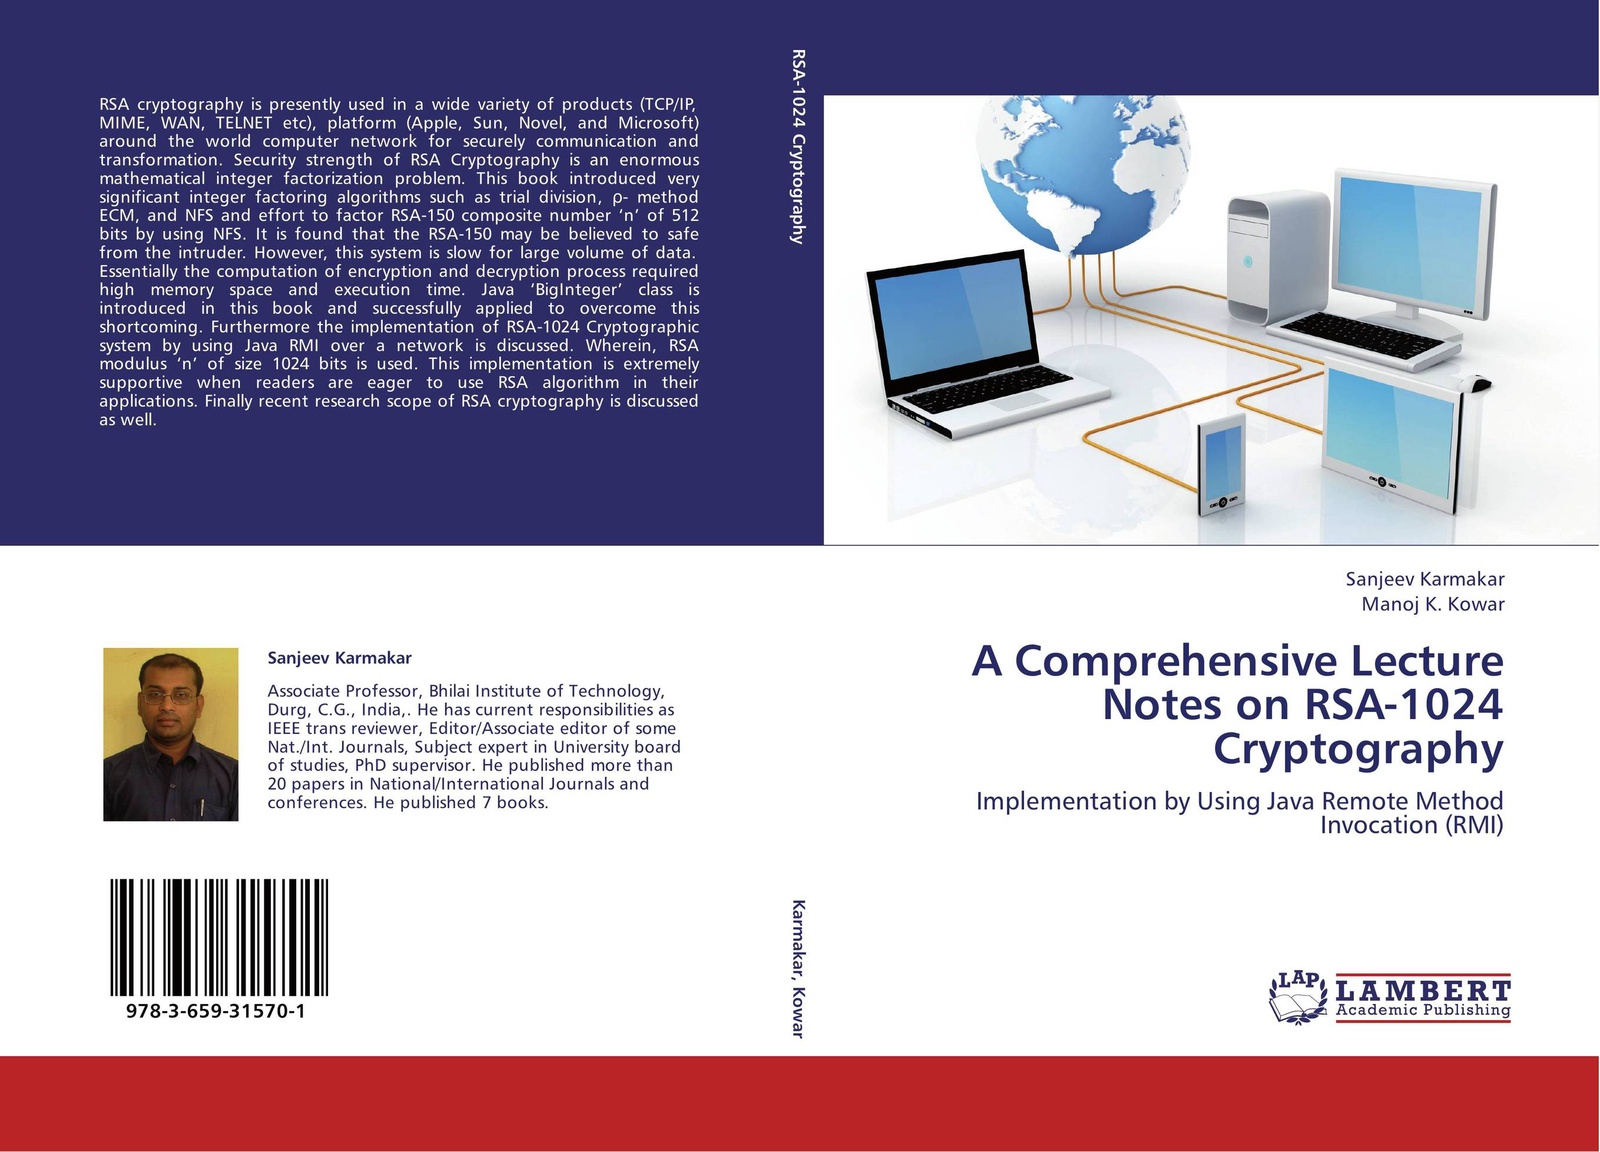 Sanjeev Karmakar and Manoj K. Kowar A Comprehensive Lecture Notes on RSA-1024 Cryptography cryptography using dynamic rotation